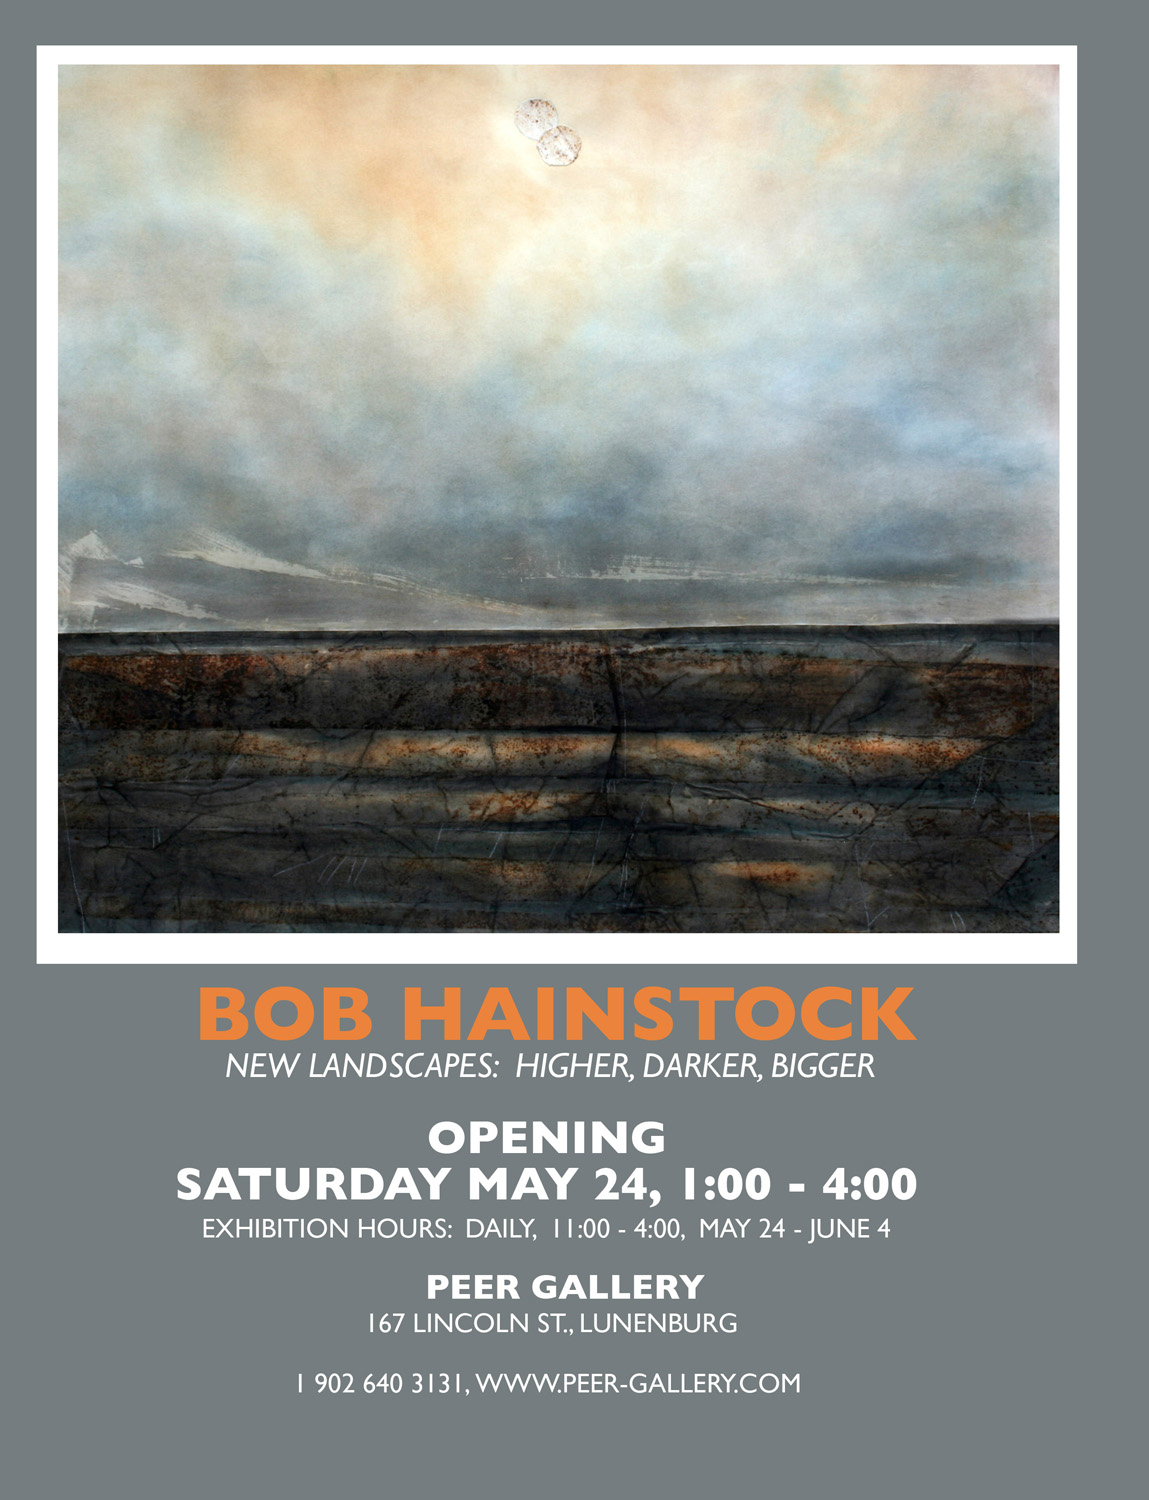 Wall poster for Bob's solo exhibition at Peer Gallery in Lunenburg.